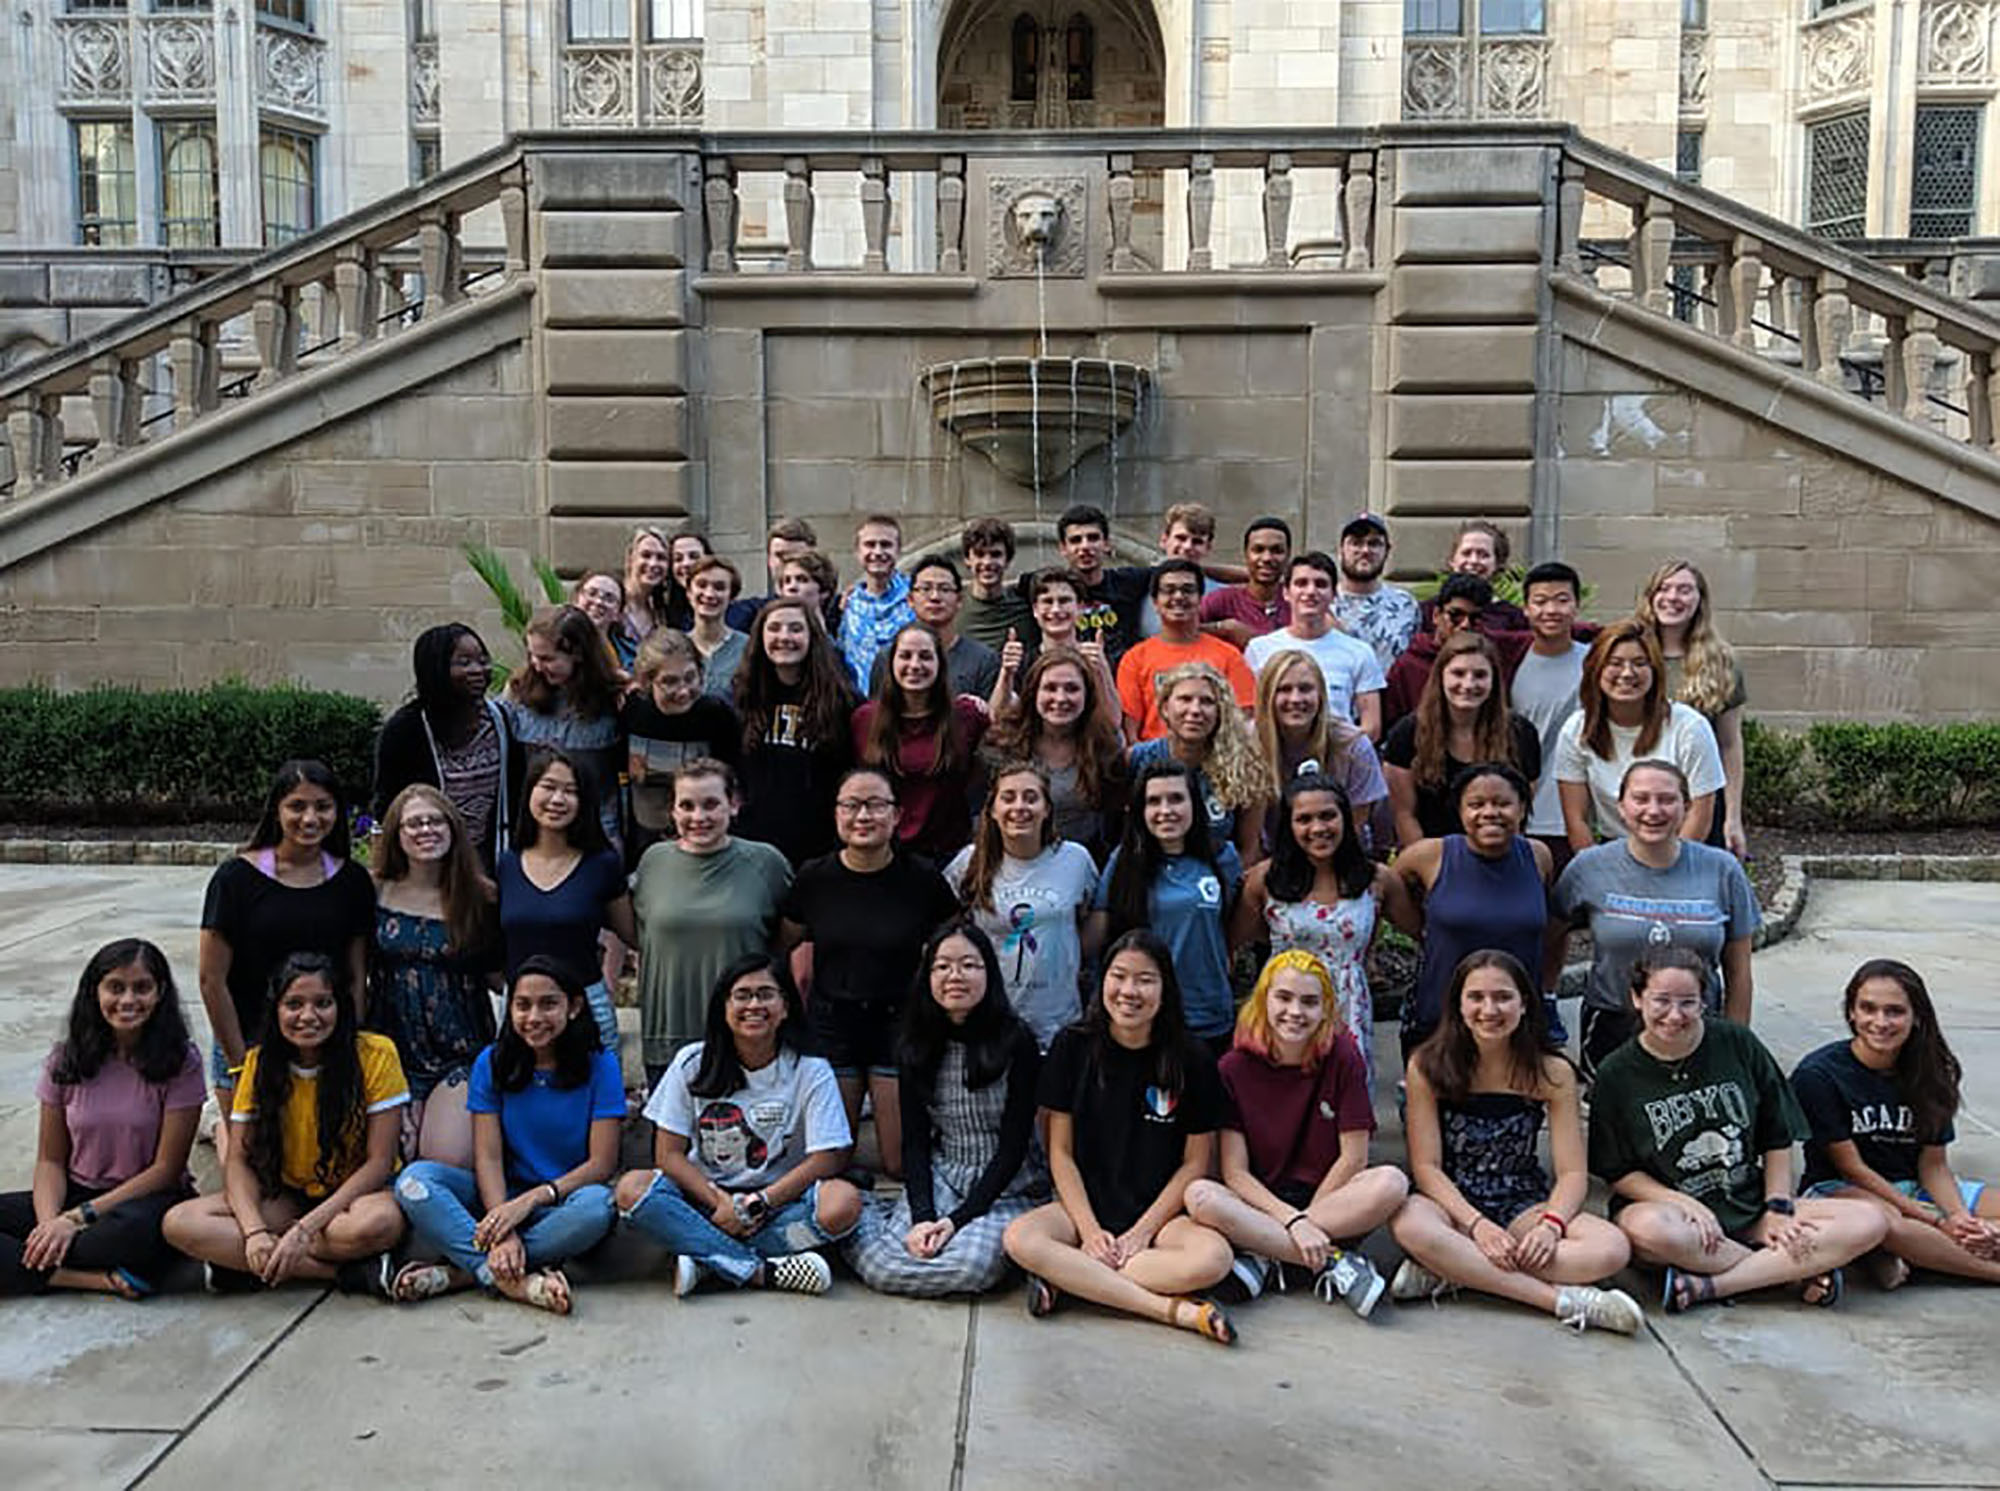 Lauren Park (front row, fifth from right) and Strath Haven H.S. classmate Alana Mackey (second row, second from right) studied at the Governor's School and hung out together in Pittsburgh.